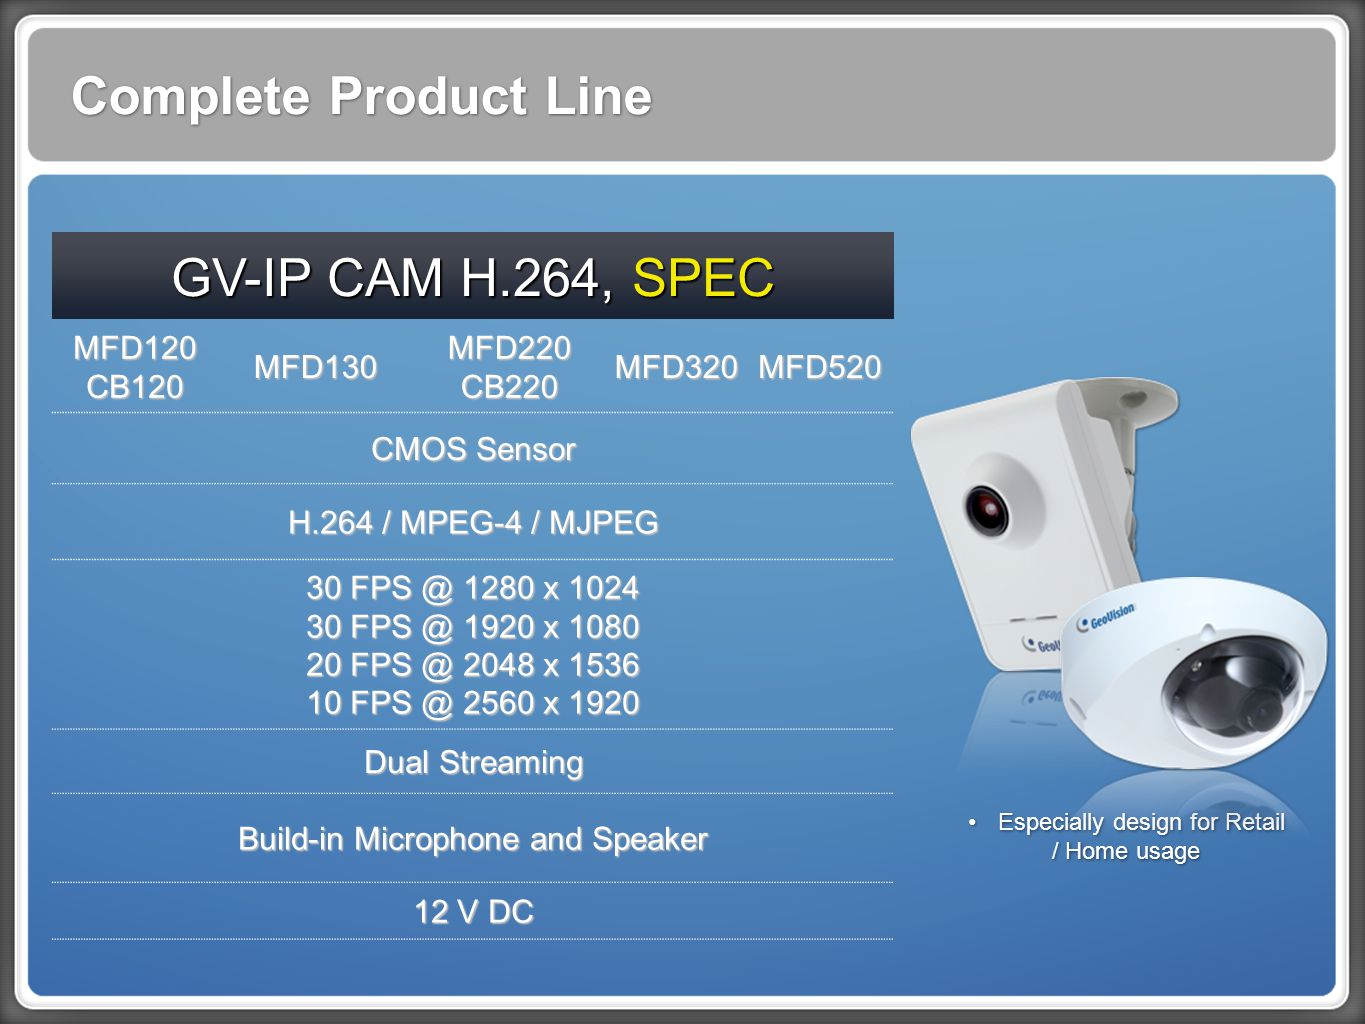 Complete Product Line GV-IP CAM H.264, SPEC MFD120CB120MFD130MFD220CB220MFD320MFD520 CMOS Sensor H.264 / MPEG-4 / MJPEG 30 FPS @ 1280 x 1024 30 FPS @ 1920 x 1080 20 FPS @ 2048 x 1536 10 FPS @ 2560 x 1920 Dual Streaming Build-in Microphone and Speaker 12 V DC Especially design for Retail / Home usage Especially design for Retail / Home usage